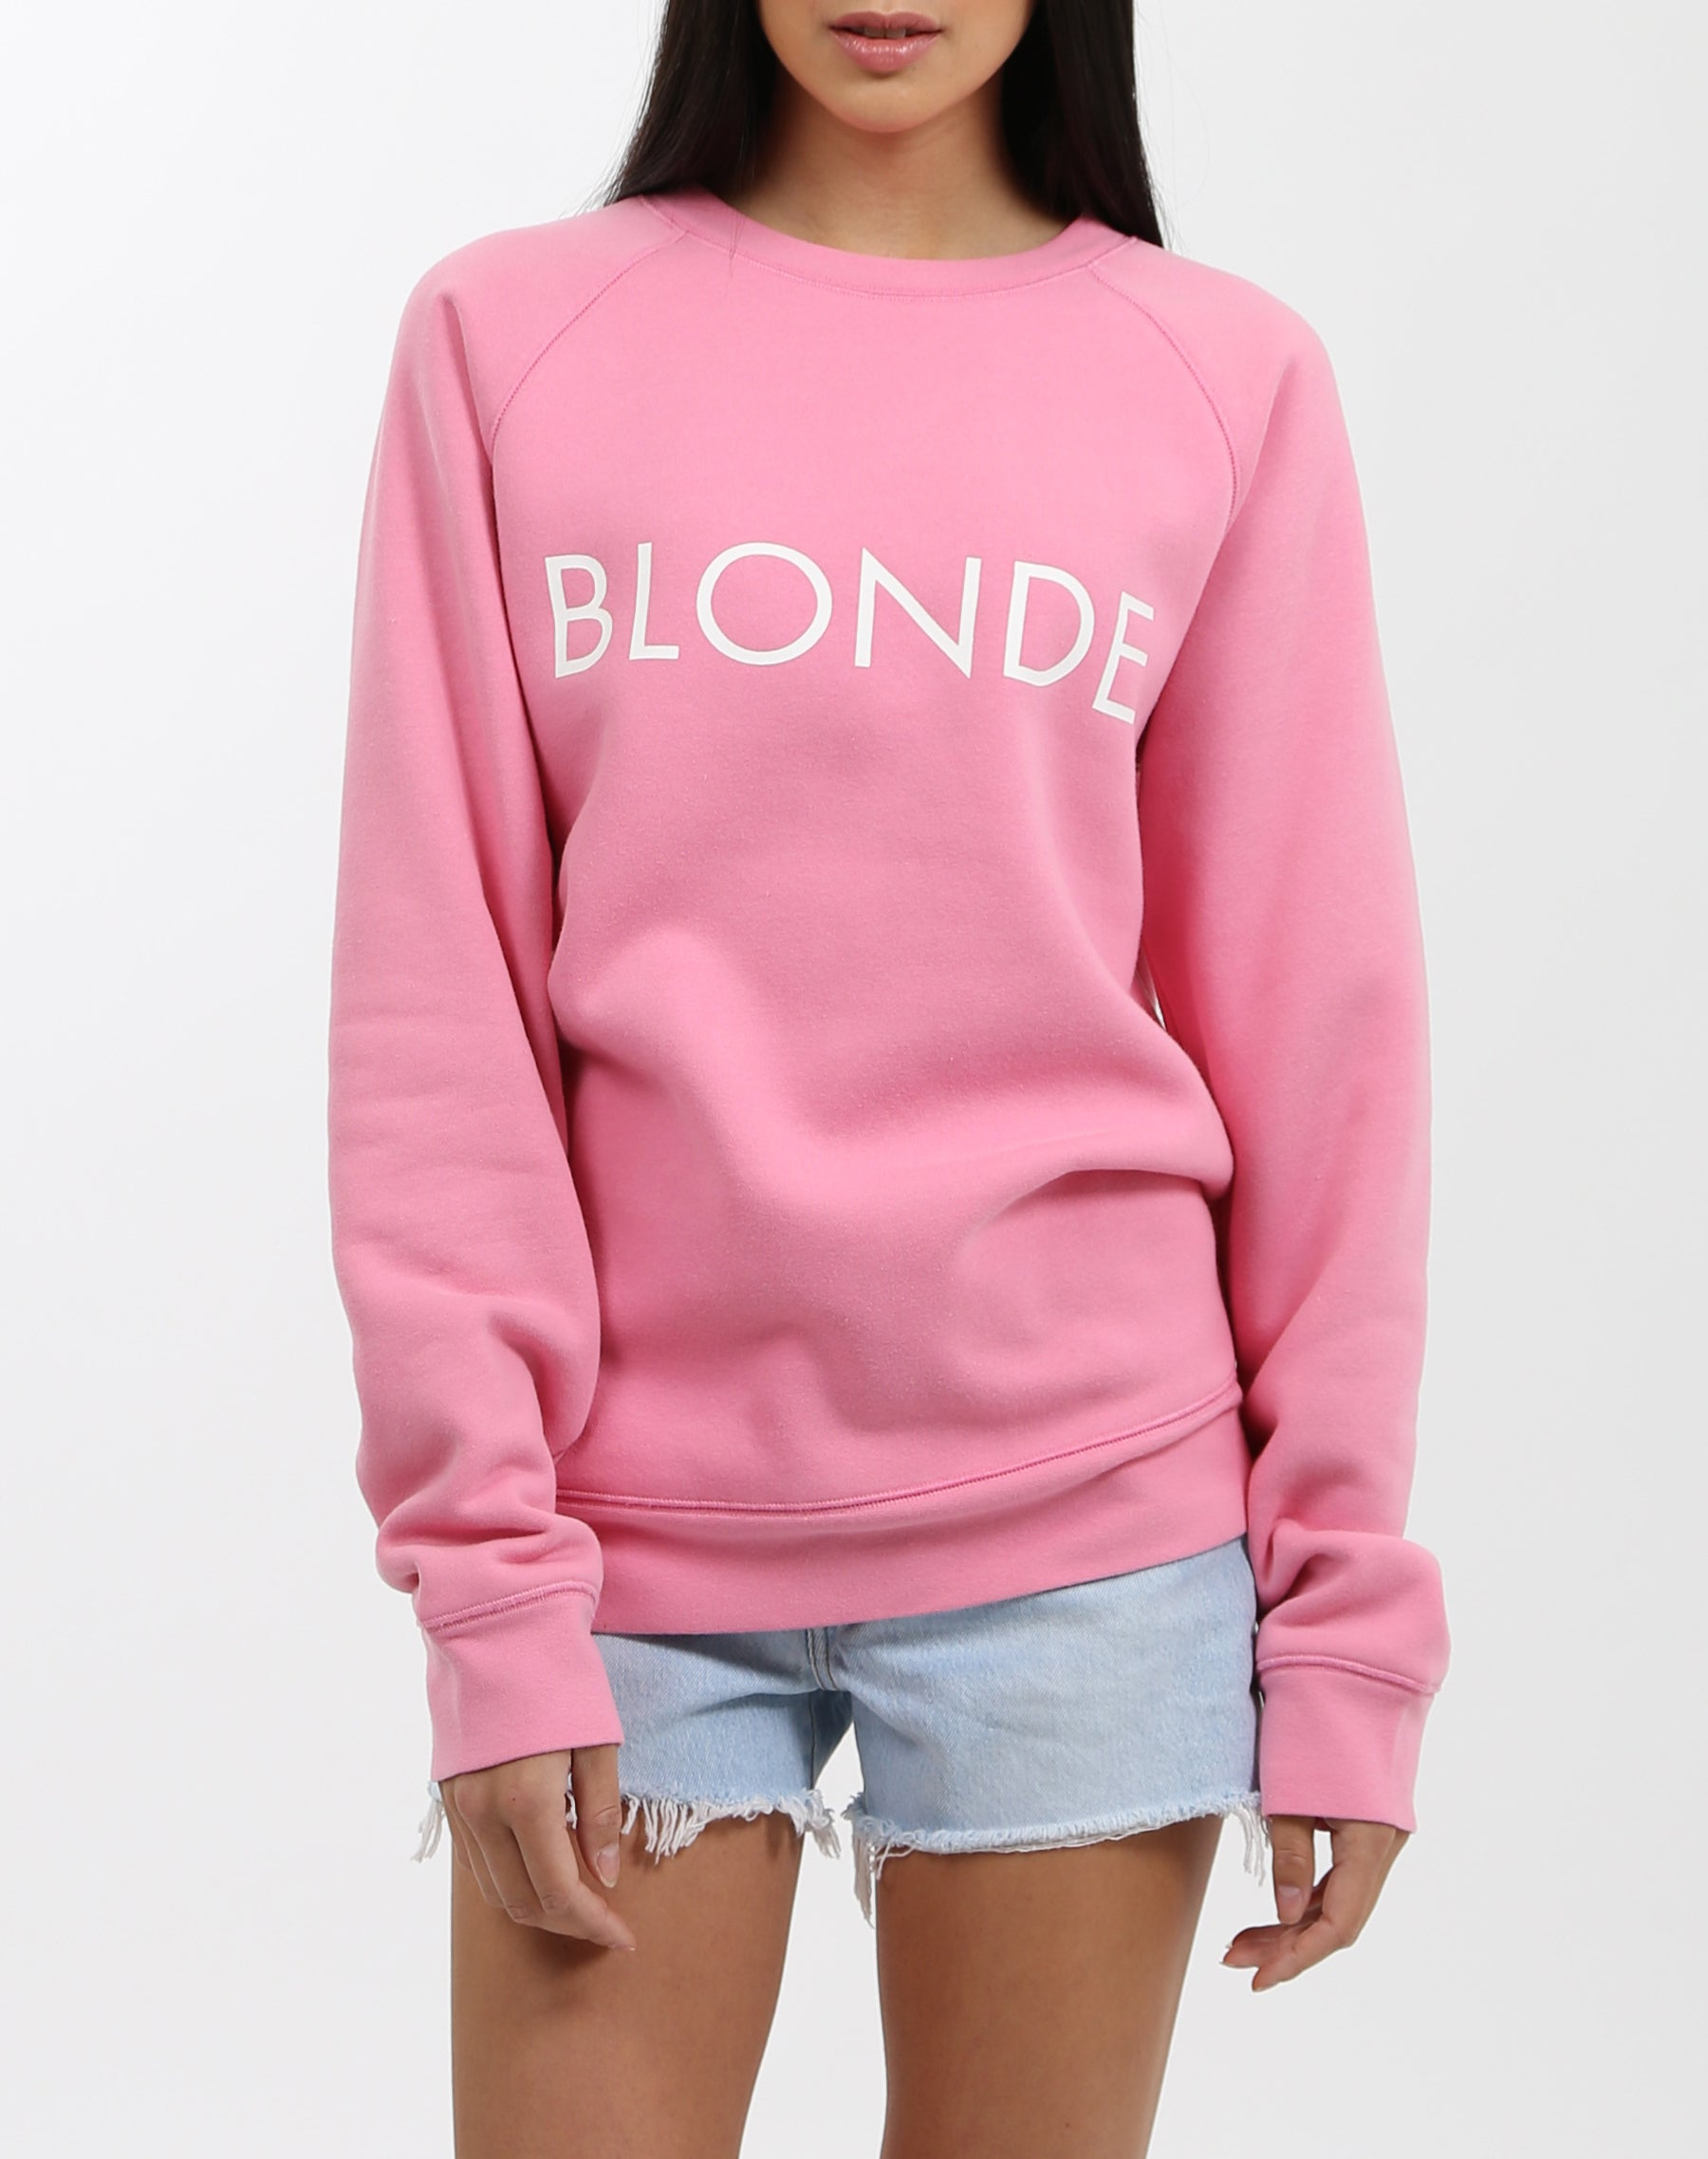 Photo of the Blonde classic crew neck sweatshirt in hot pink by Brunette the Label.